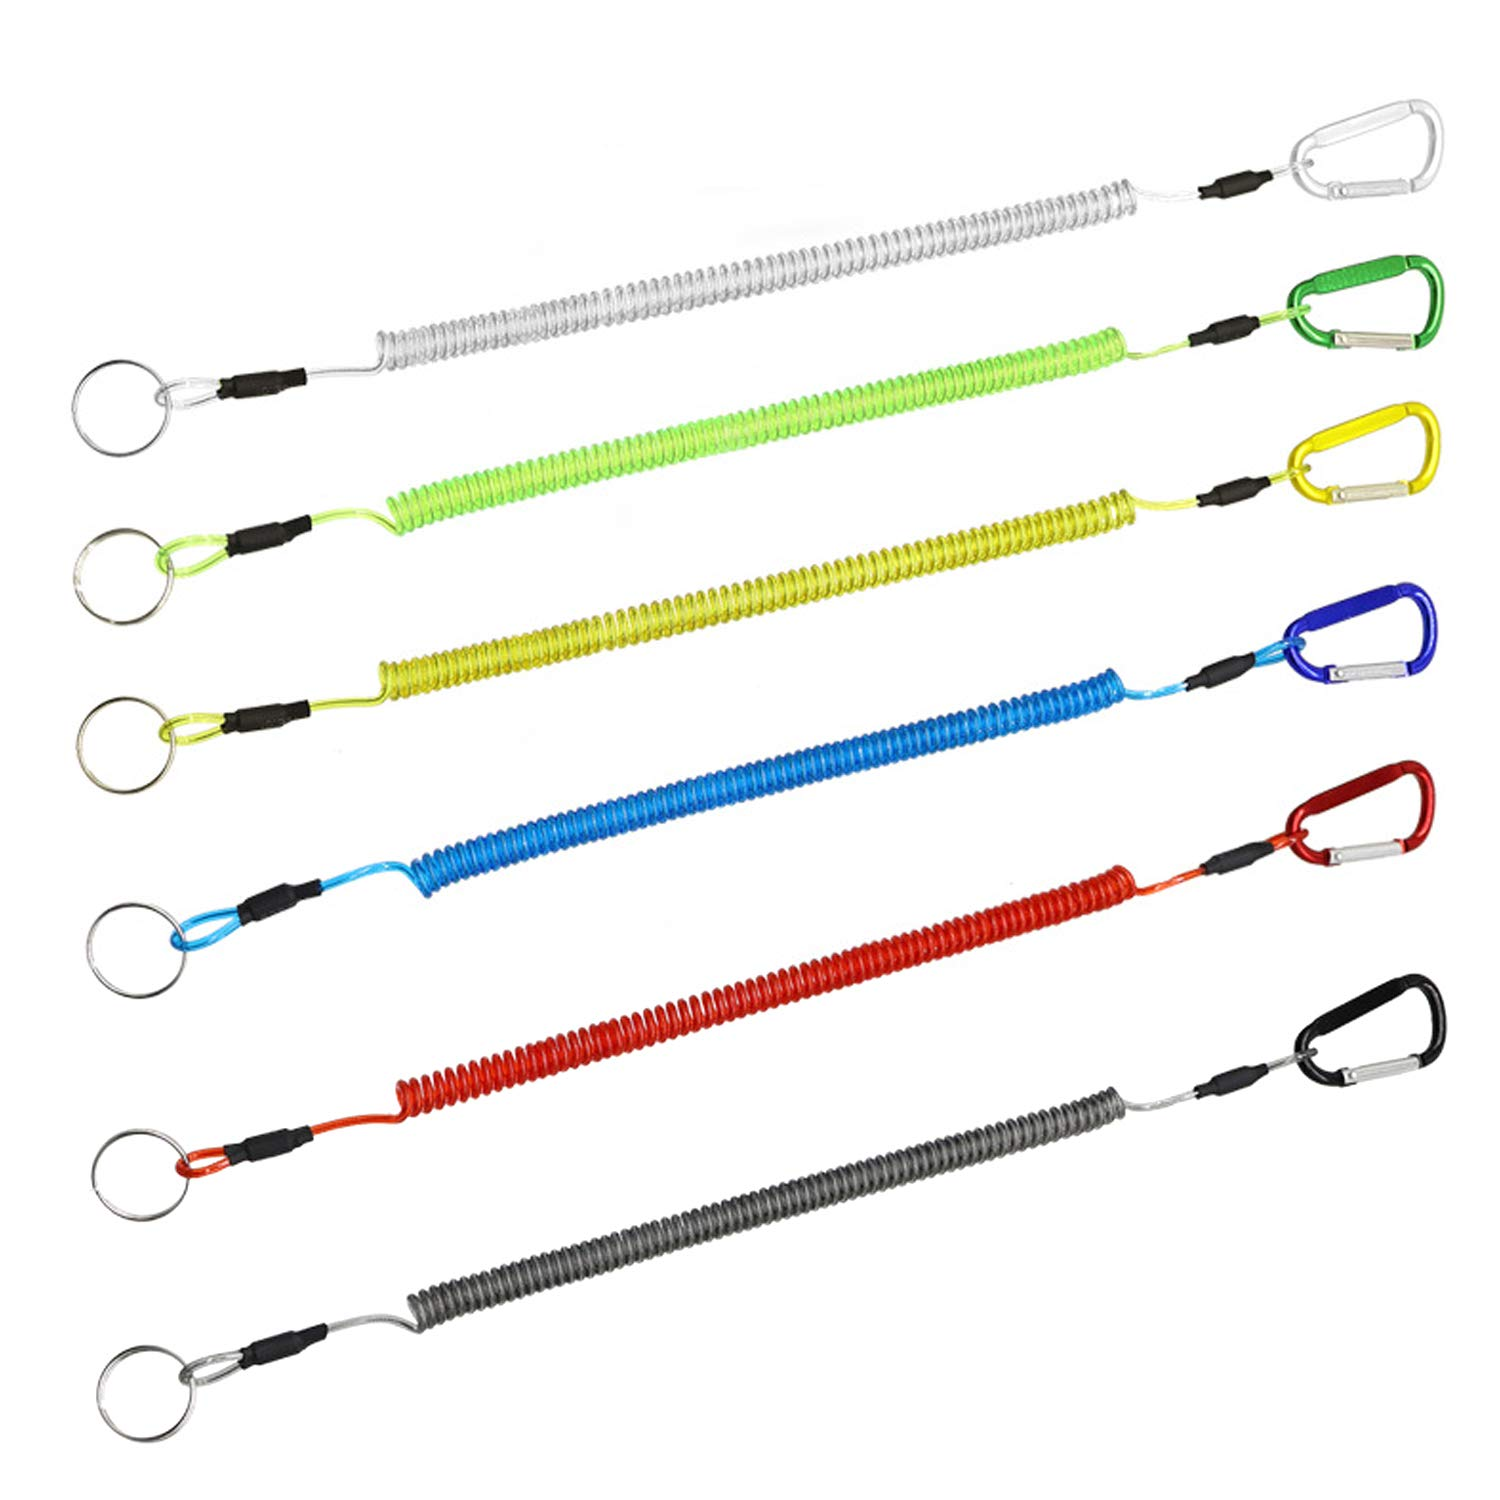 Hunter's Tail Fishing Lanyard, (6 Pcs) Fishing License Lanyard Fishing Lanyards Boating Ropes Safety Retractable Wire Steel Coiled Tether with Carabiner Fish Tools Multi-Colored